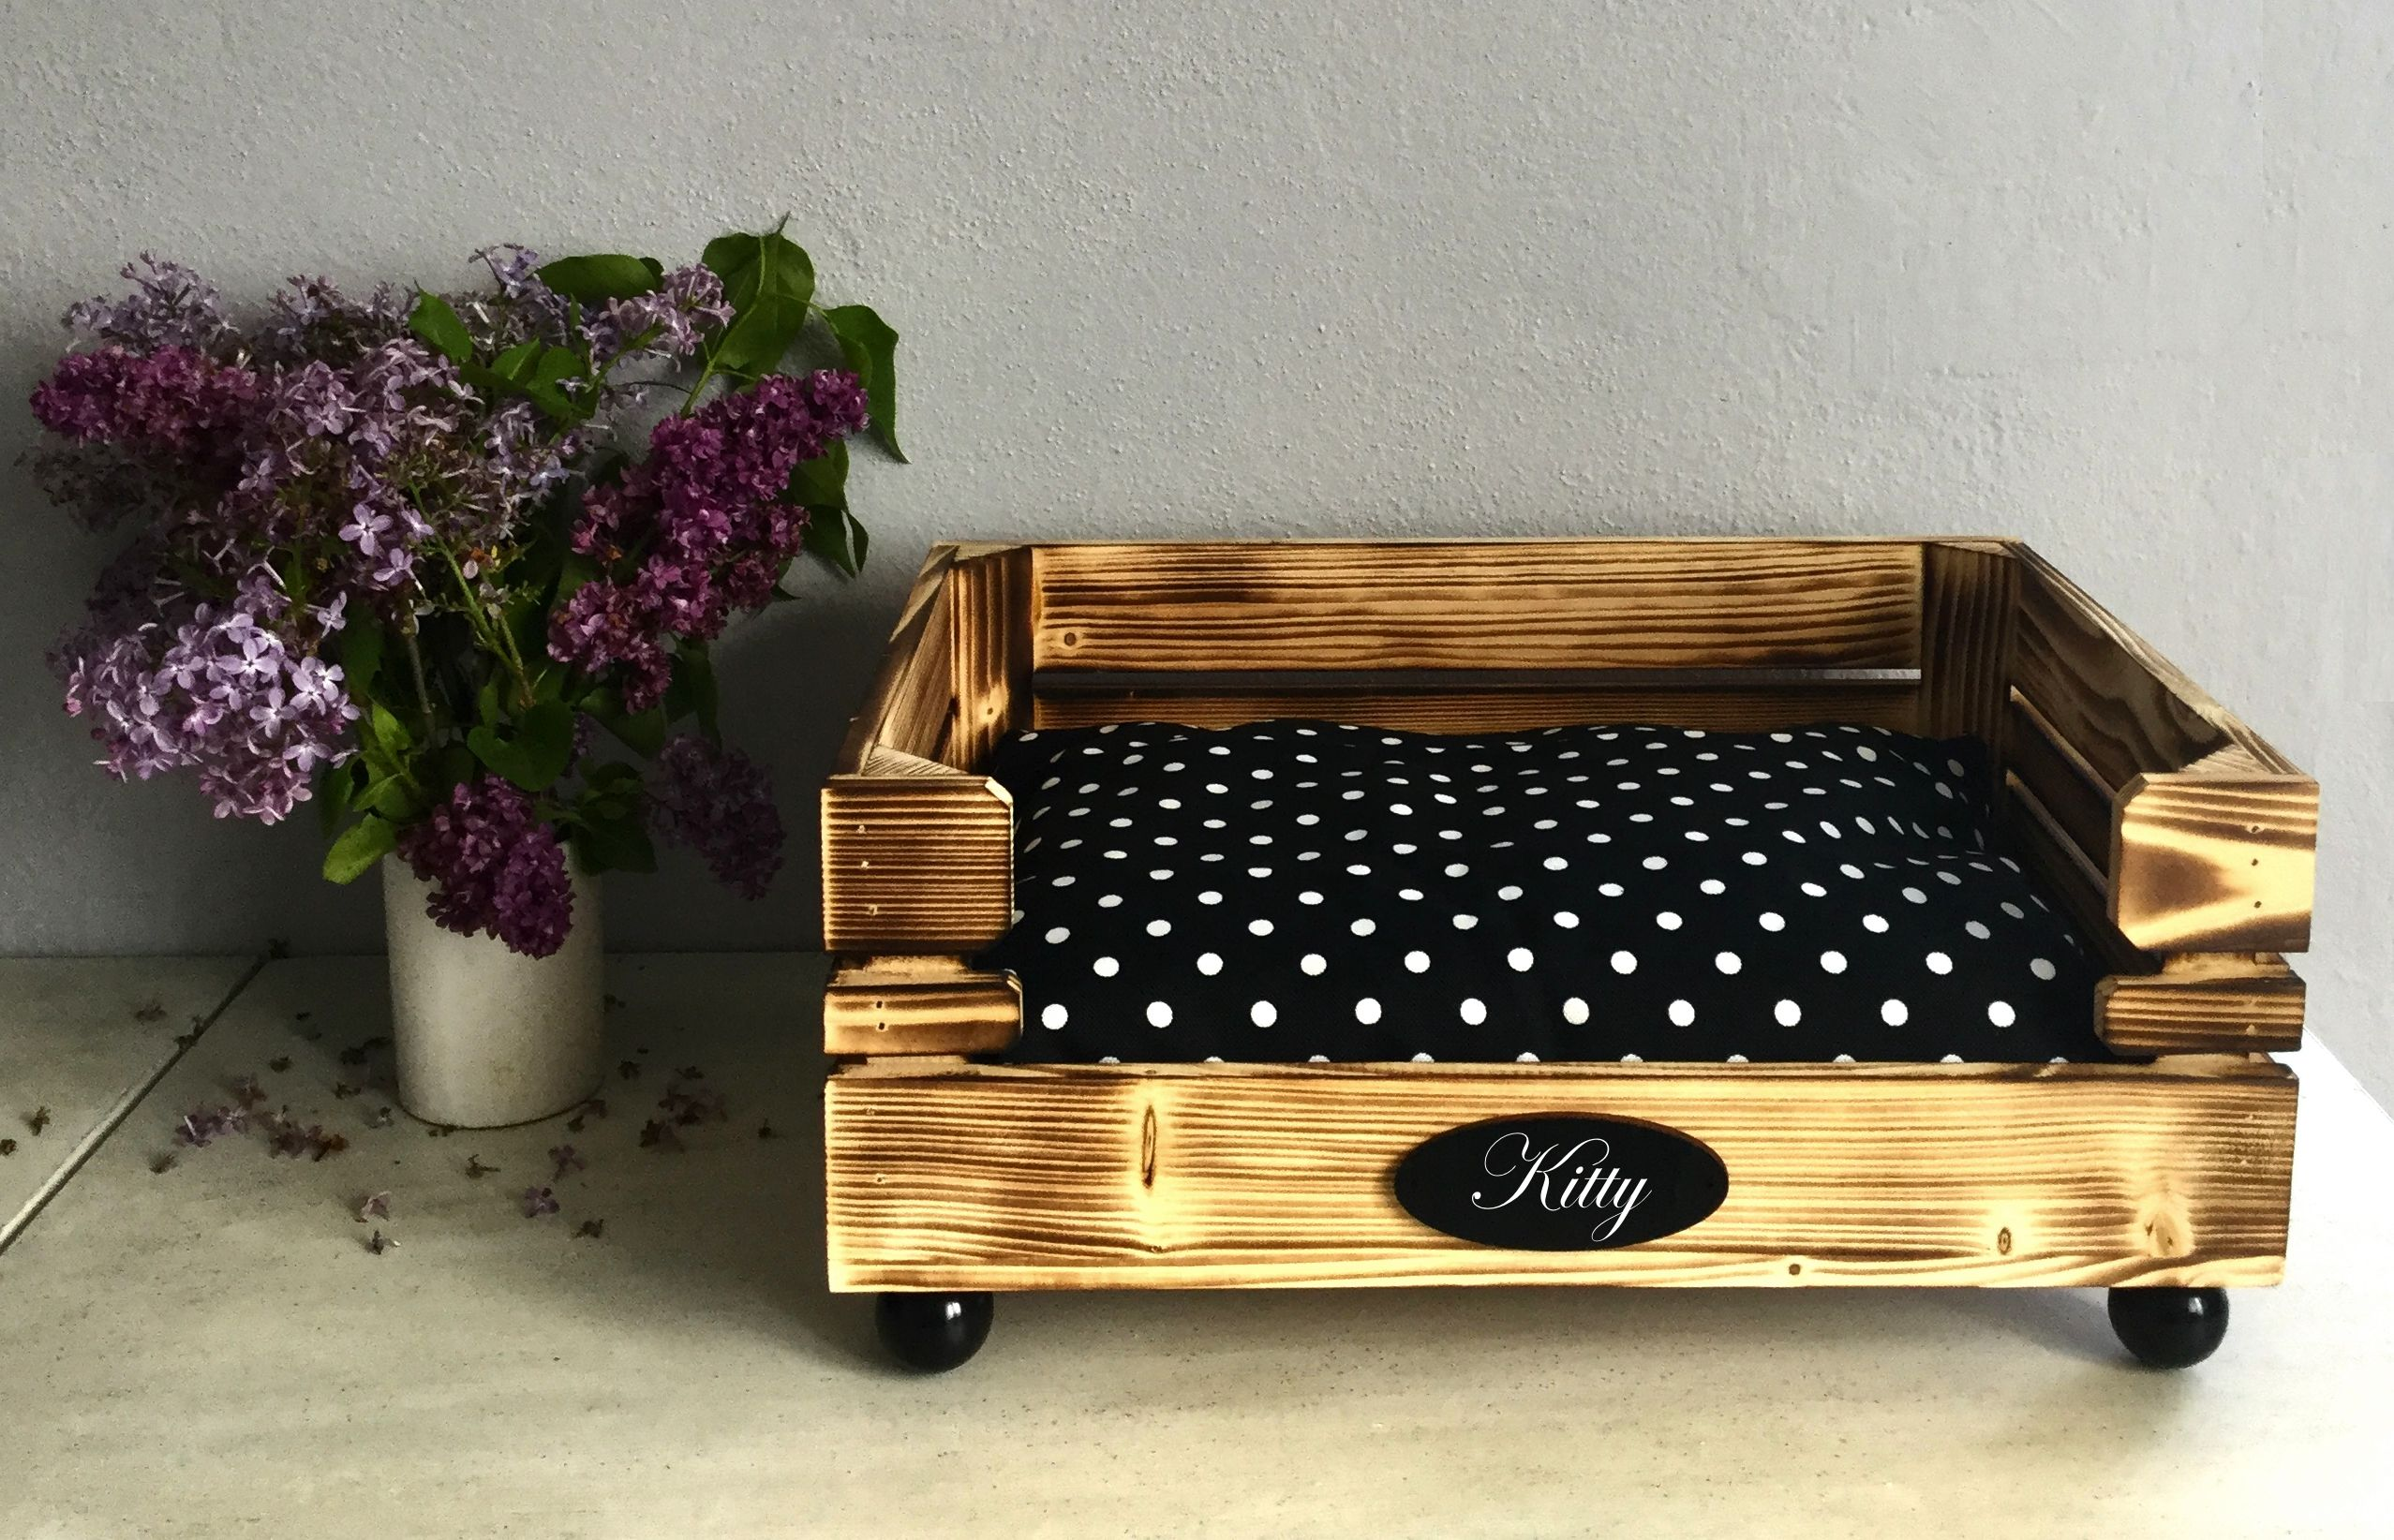 Wooden dog bed / sofa / lounge Sierra with nameplate